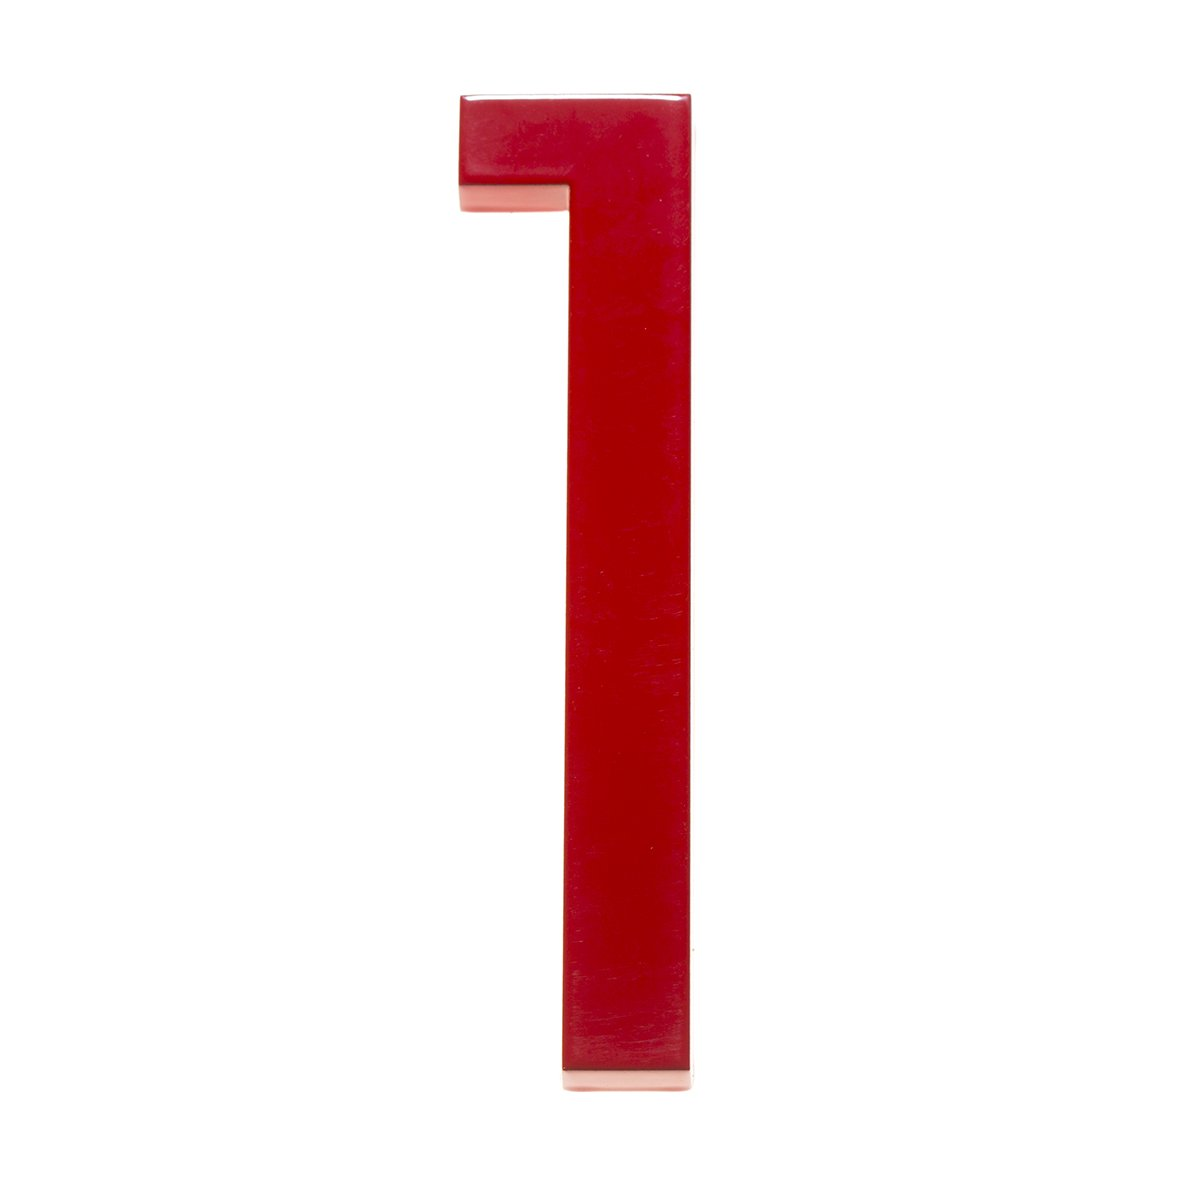 High quality modern house number red color aluminum modern font number one 1